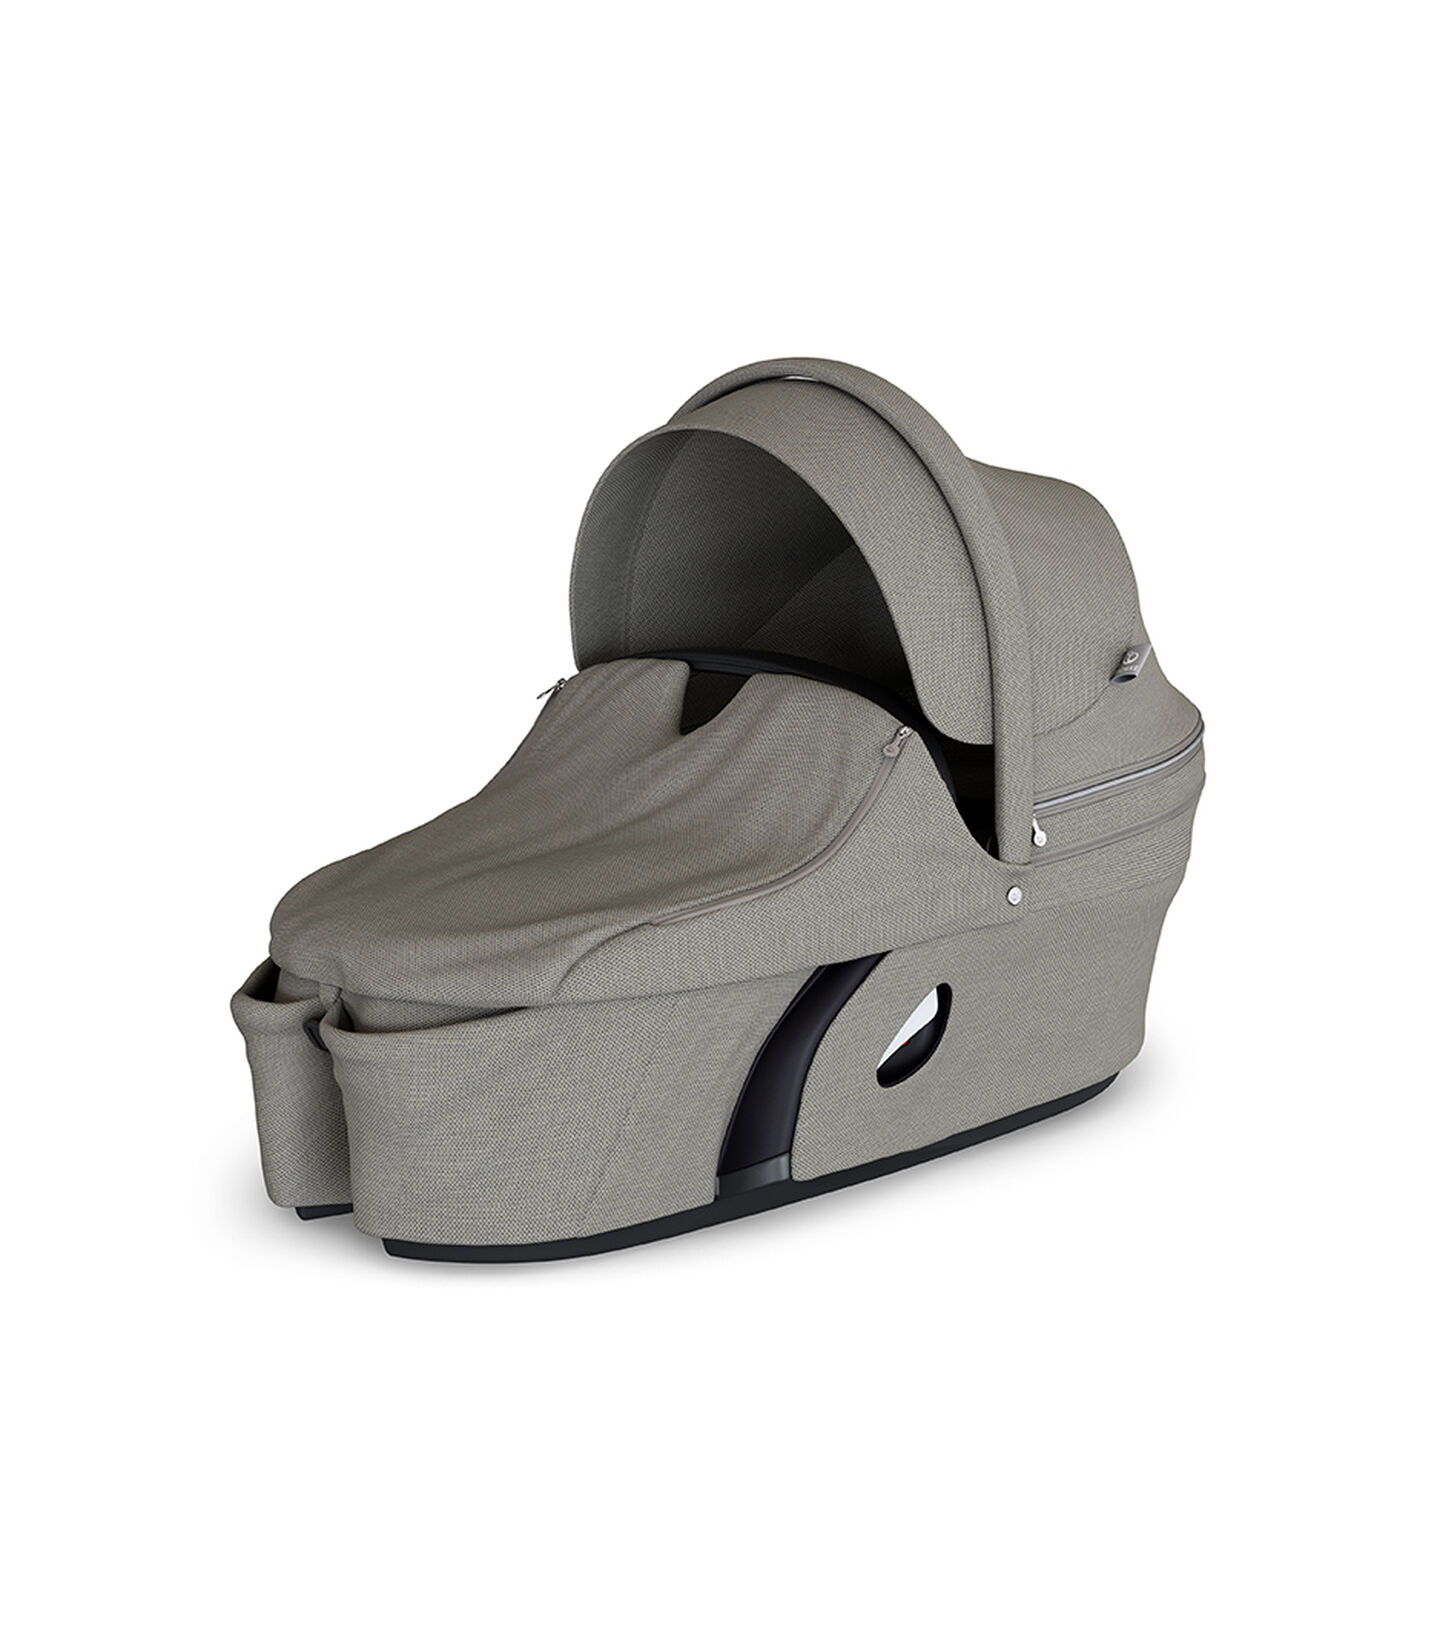 Stokke® Xplory® Carry Cot Complete Brushed Grey, Brushed Grey, mainview view 2